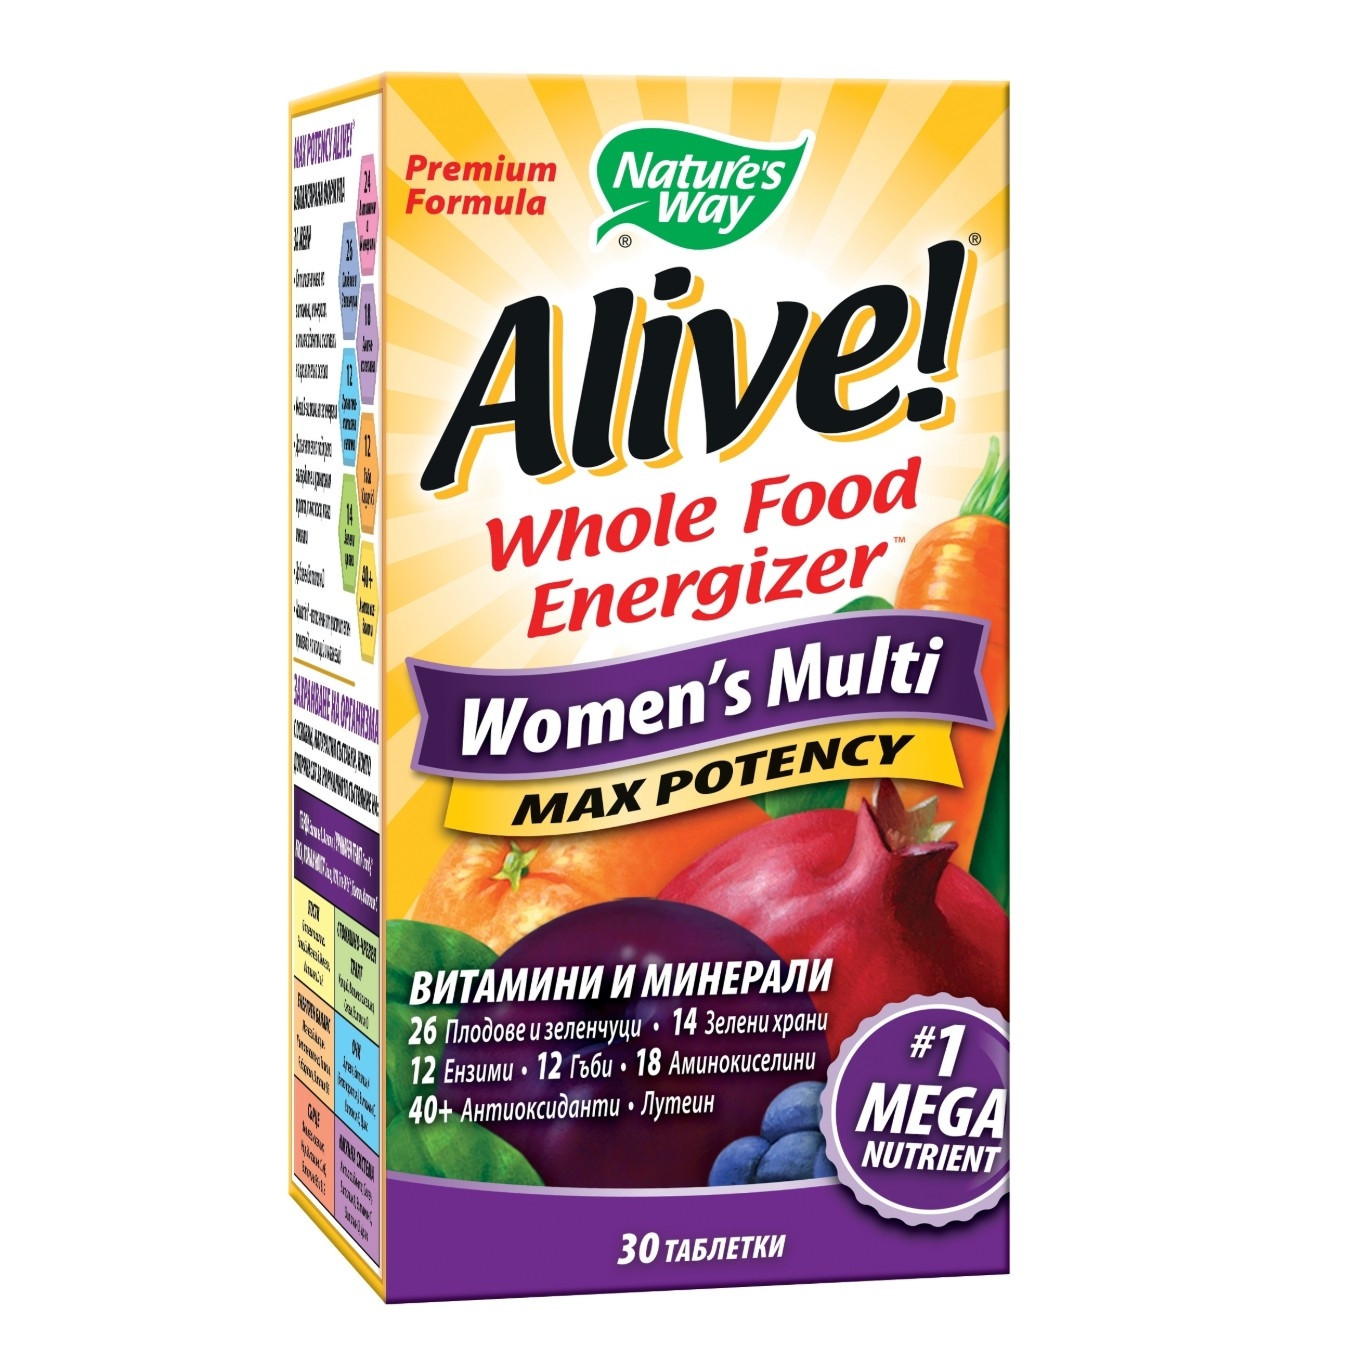 АЛАЙВ Мултивитамини за жени 30 табл. НЕЙЧЪР'С УЕЙ | ALIVE Multivitamins max potency Women's Multi 30 tabs NATURE'S WAY